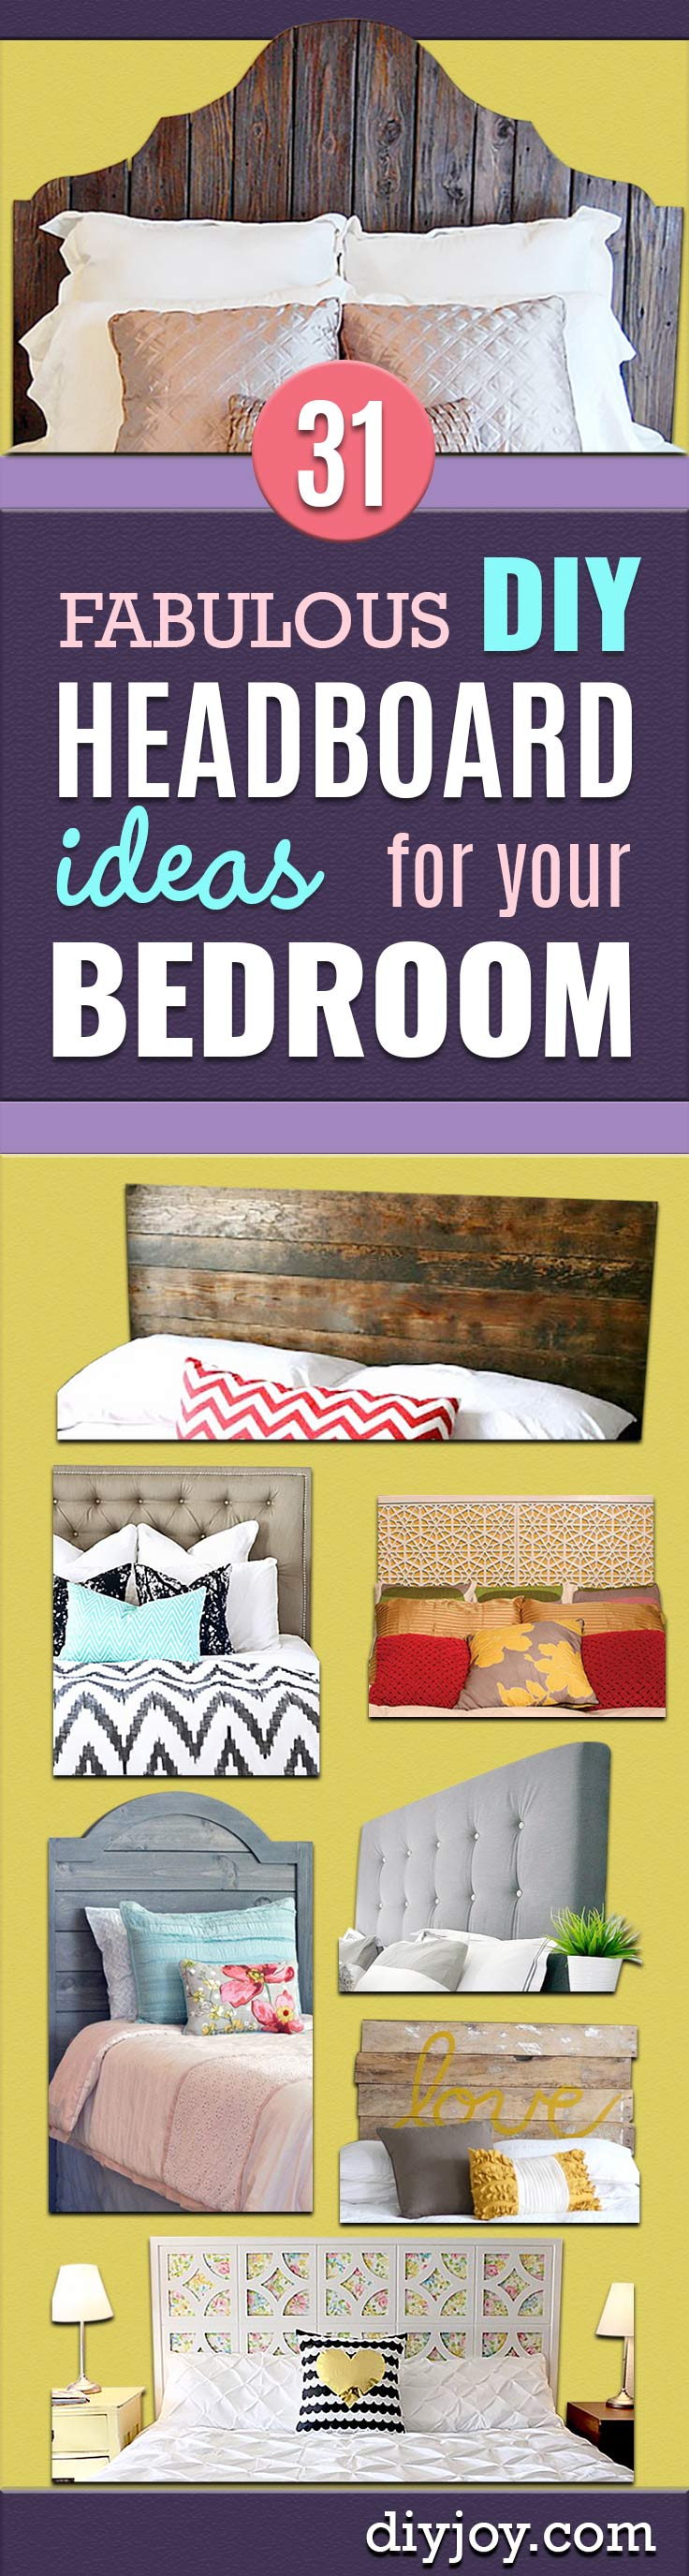 DIY Headboard Ideas -  Easy and Cheap Do It Yourself Headboards - Upholstered, Wooden, Fabric Tufted, Rustic Pallet, Projects With Lights, Storage and More Step by Step Tutorials http://diyjoy.com/diy-headboards